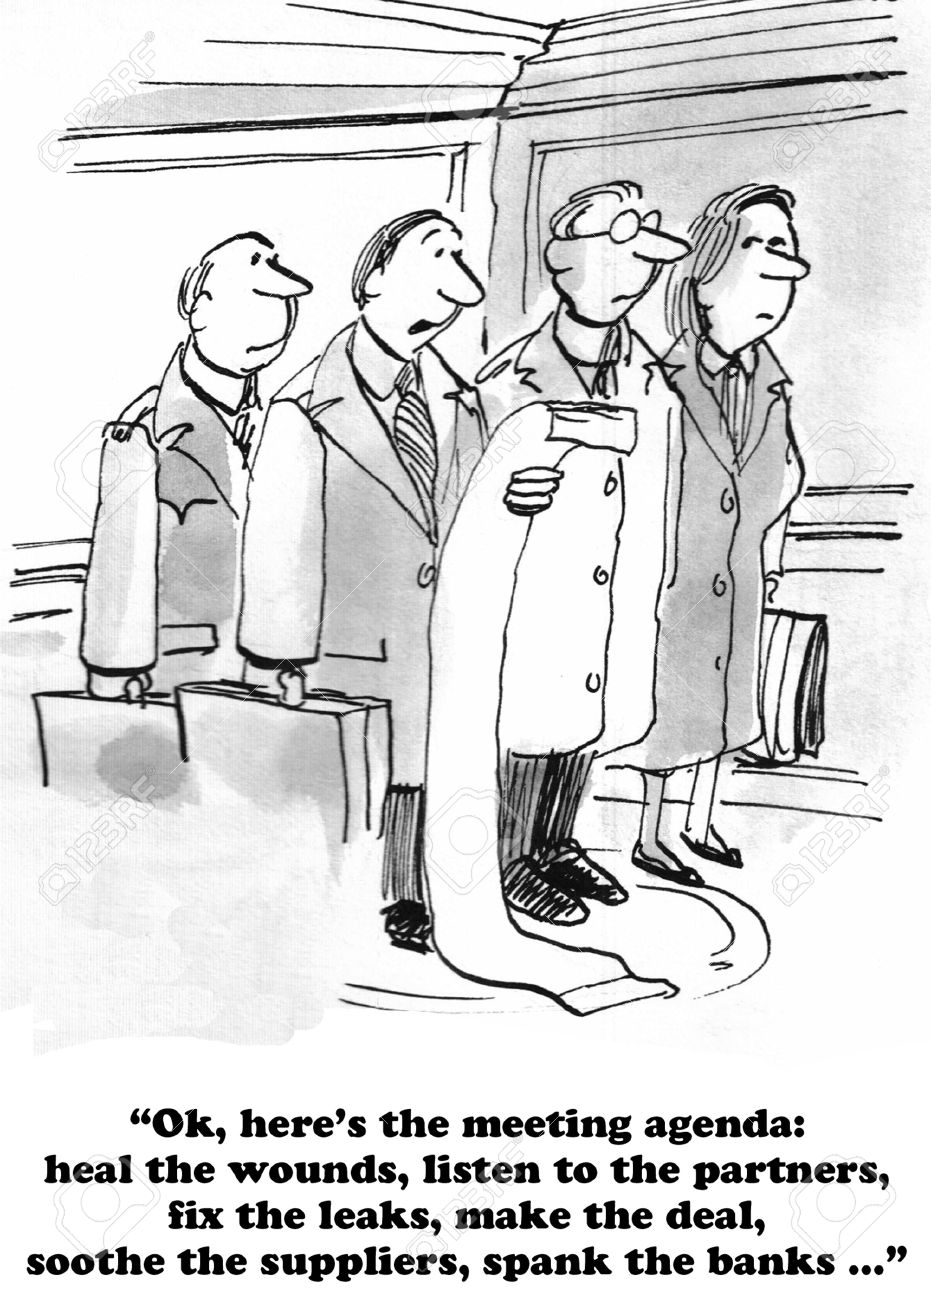 Business Cartoon About A Bad Meeting Agenda. Stock Photo, Picture ...